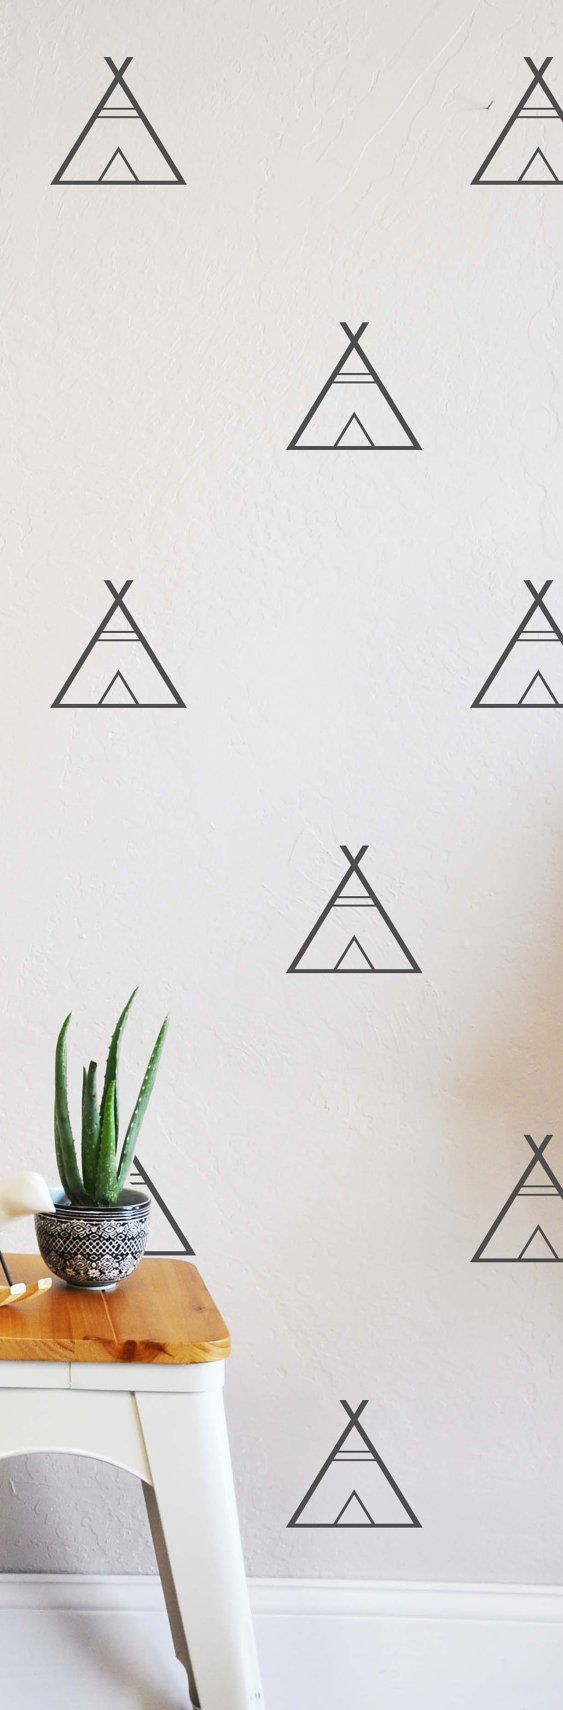 """32qty - 4""""h x 4""""w tee pee wall decal  The interior is cut out so that the wall shows through as the background.  It is sent with a transfer tape application.  Fully removable and reusable wall decals that will brighten and add  character to any room.  **PLEASE NOTE THAT METALLIC VINYL IS NOT REUSABLE**  -100% polyester fabric self adhesive vinyl -HP Latex Inks  ARTIST THE LOVELY WALL"""